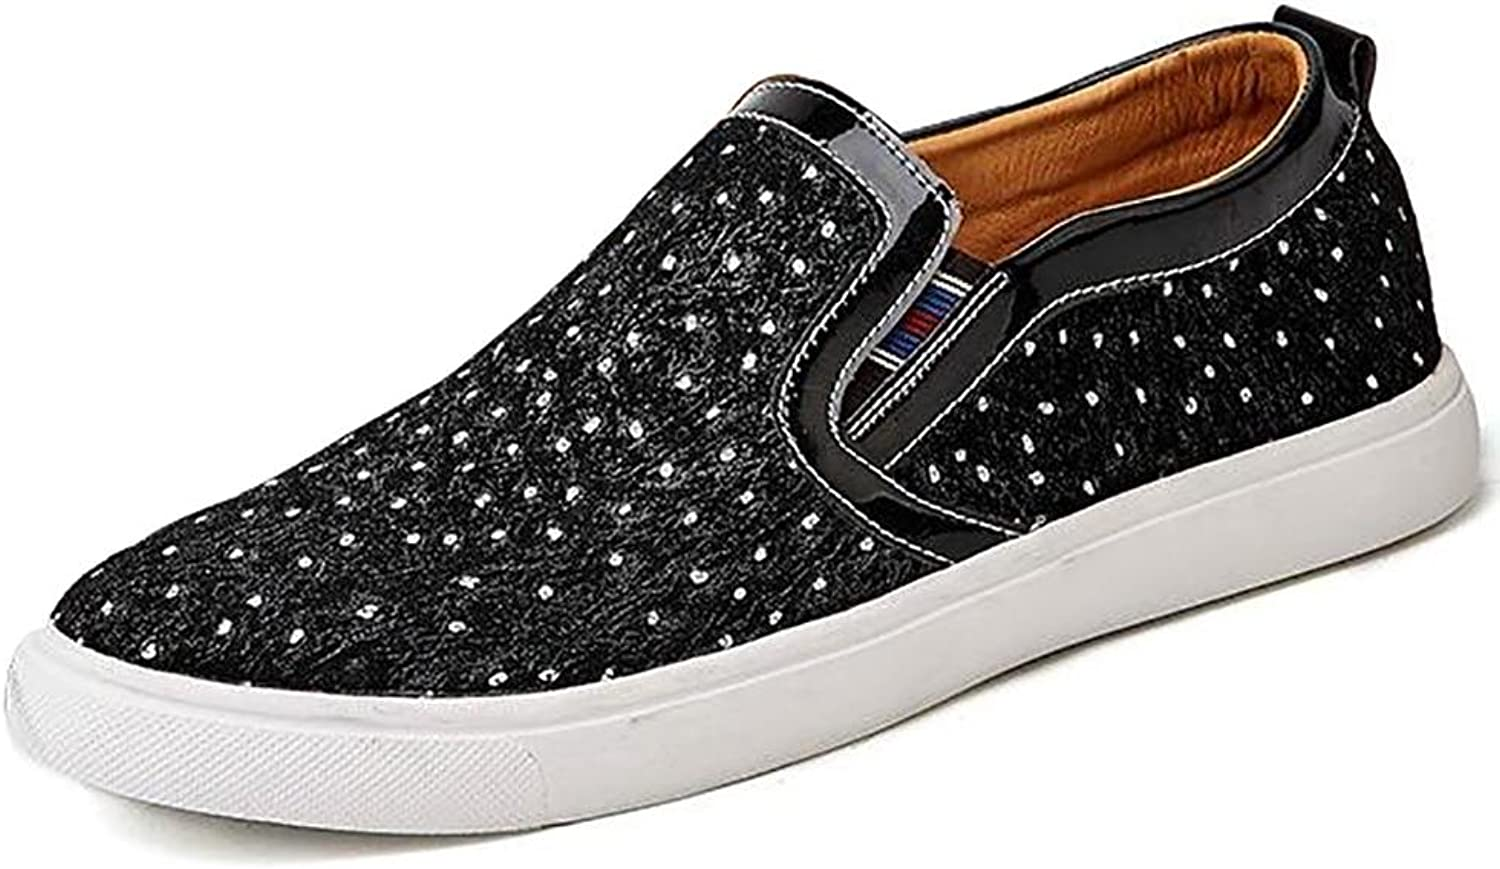 NANYDXIE Men's Suede Pattern Low Top Hand Made Fashion Sneakers Outdoor Leisure